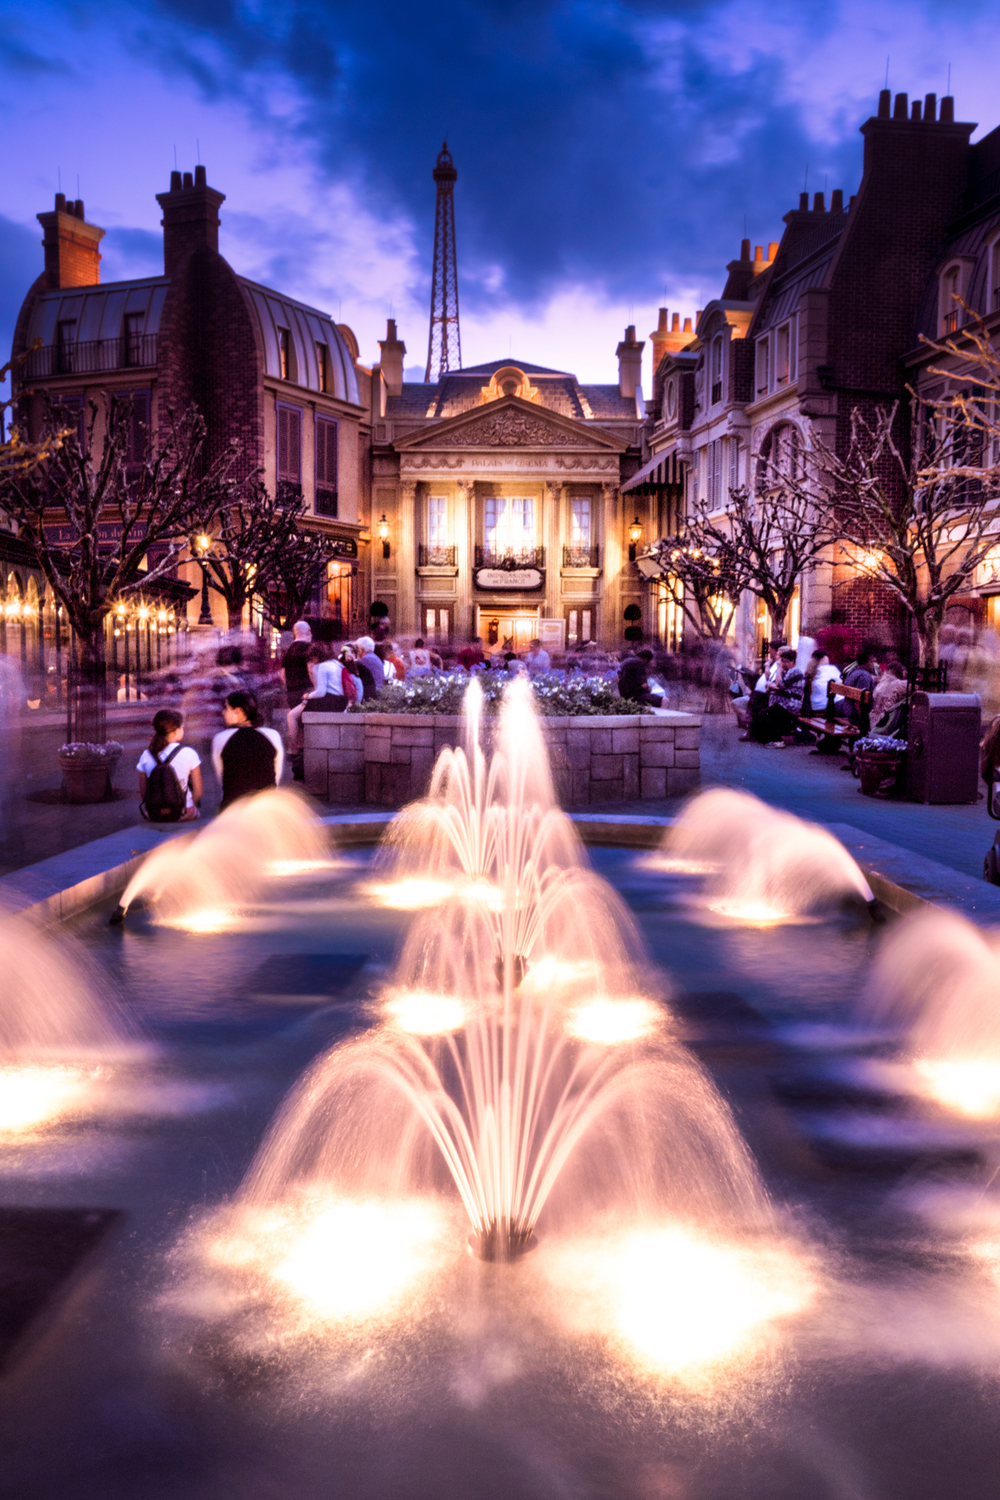 My favorite shot, of the fountains in the France Pavilion.